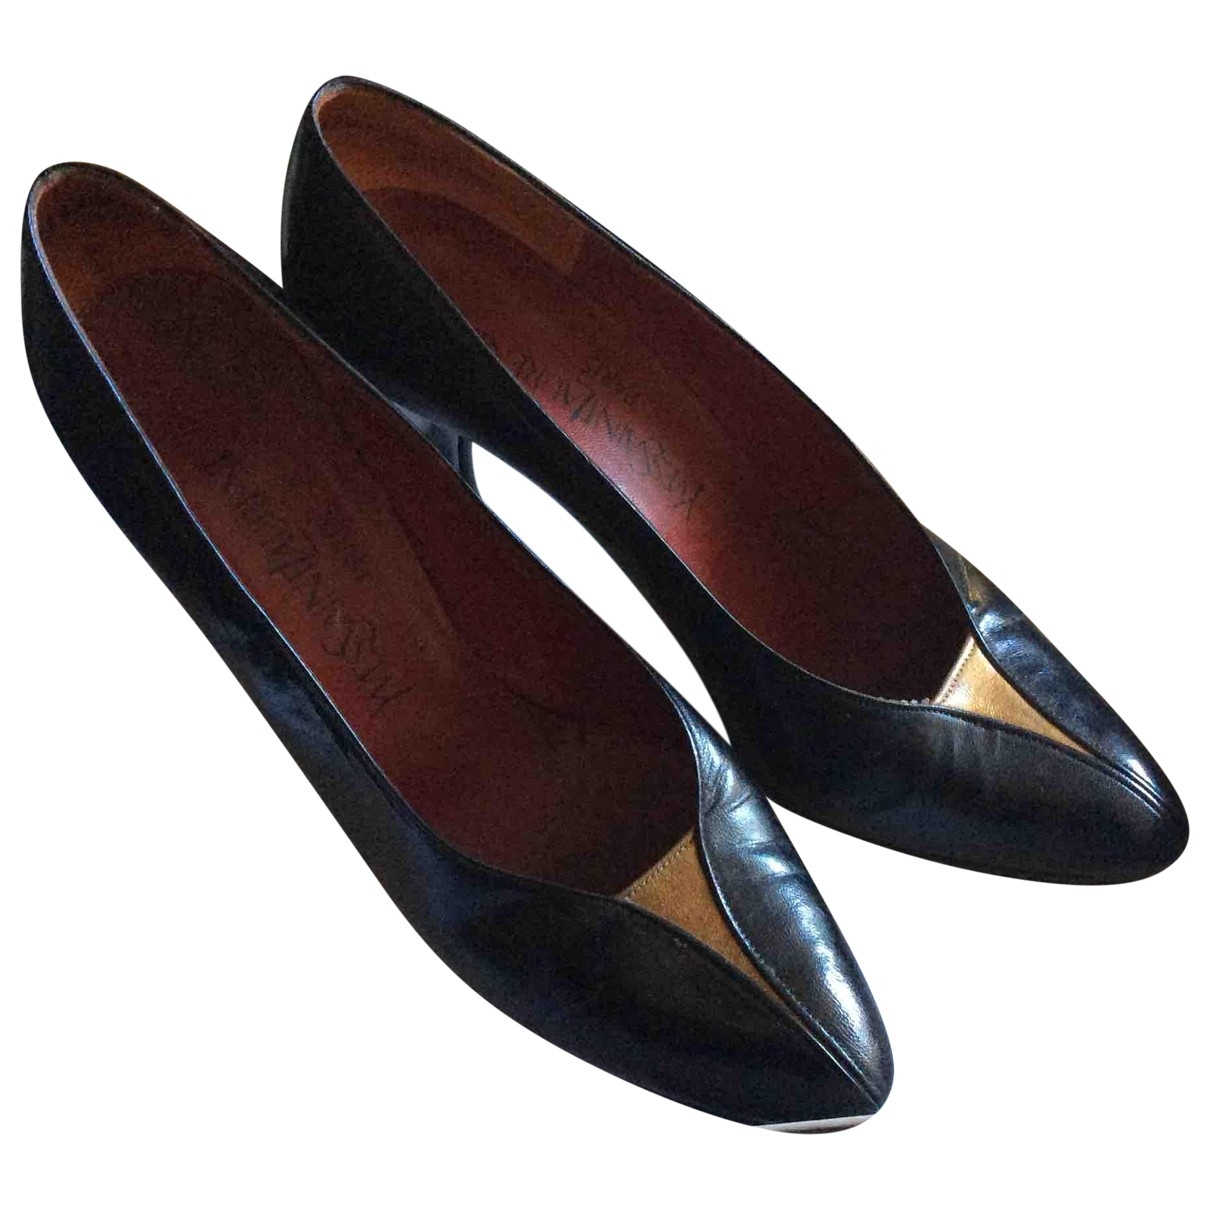 Yves Saint Laurent \N Black Leather Heels for Women 37.5 EU